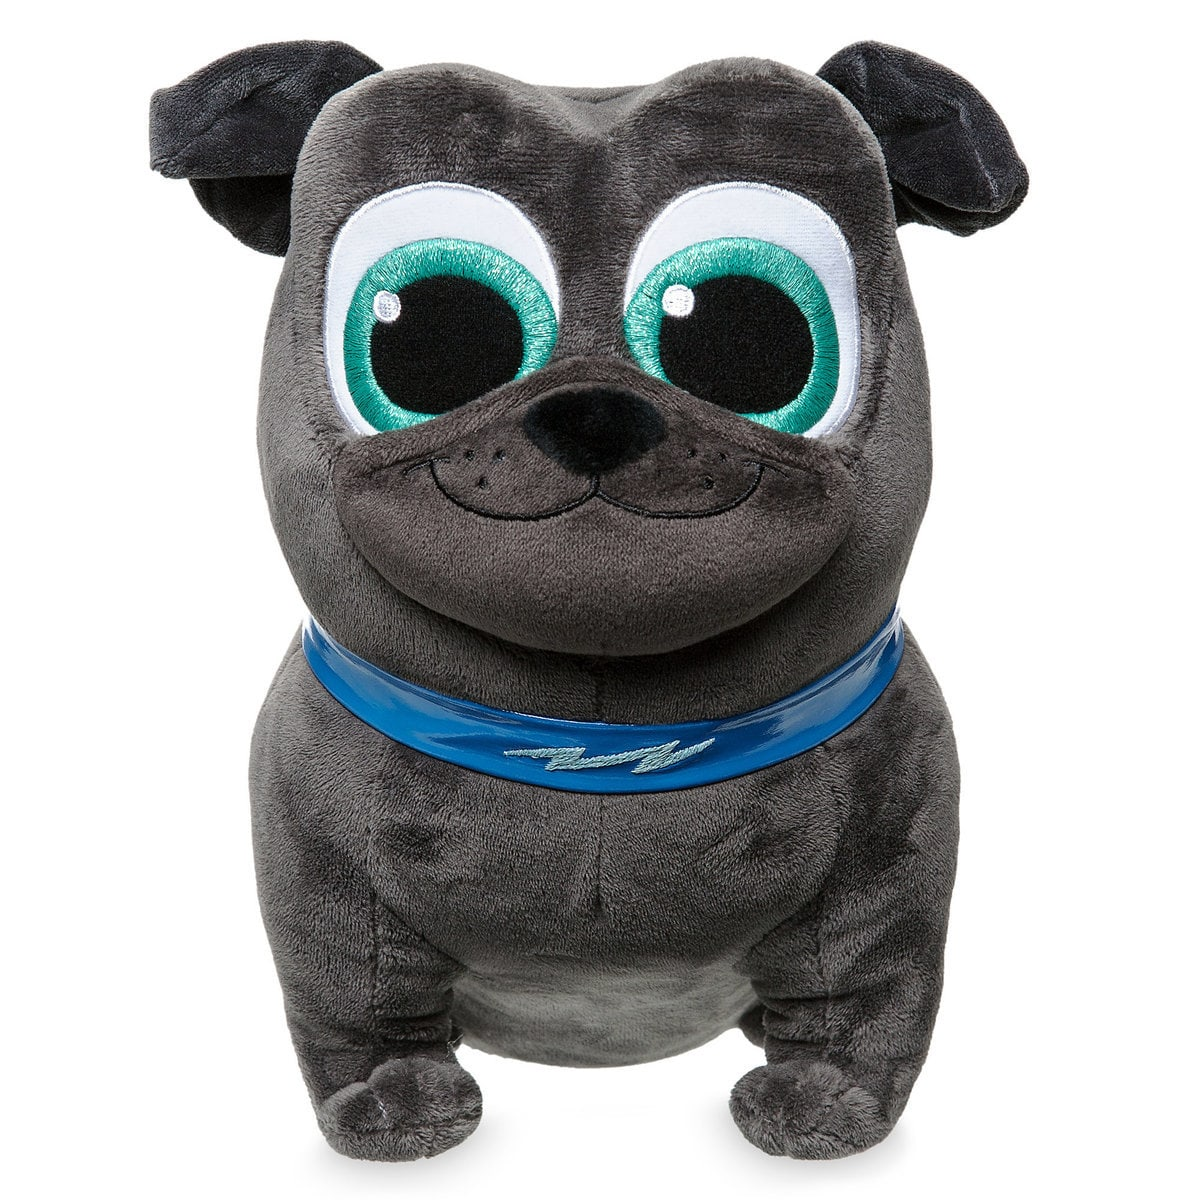 Thumbnail Image Of Bingo Plush Puppy Dog Pals Small 8 1 2